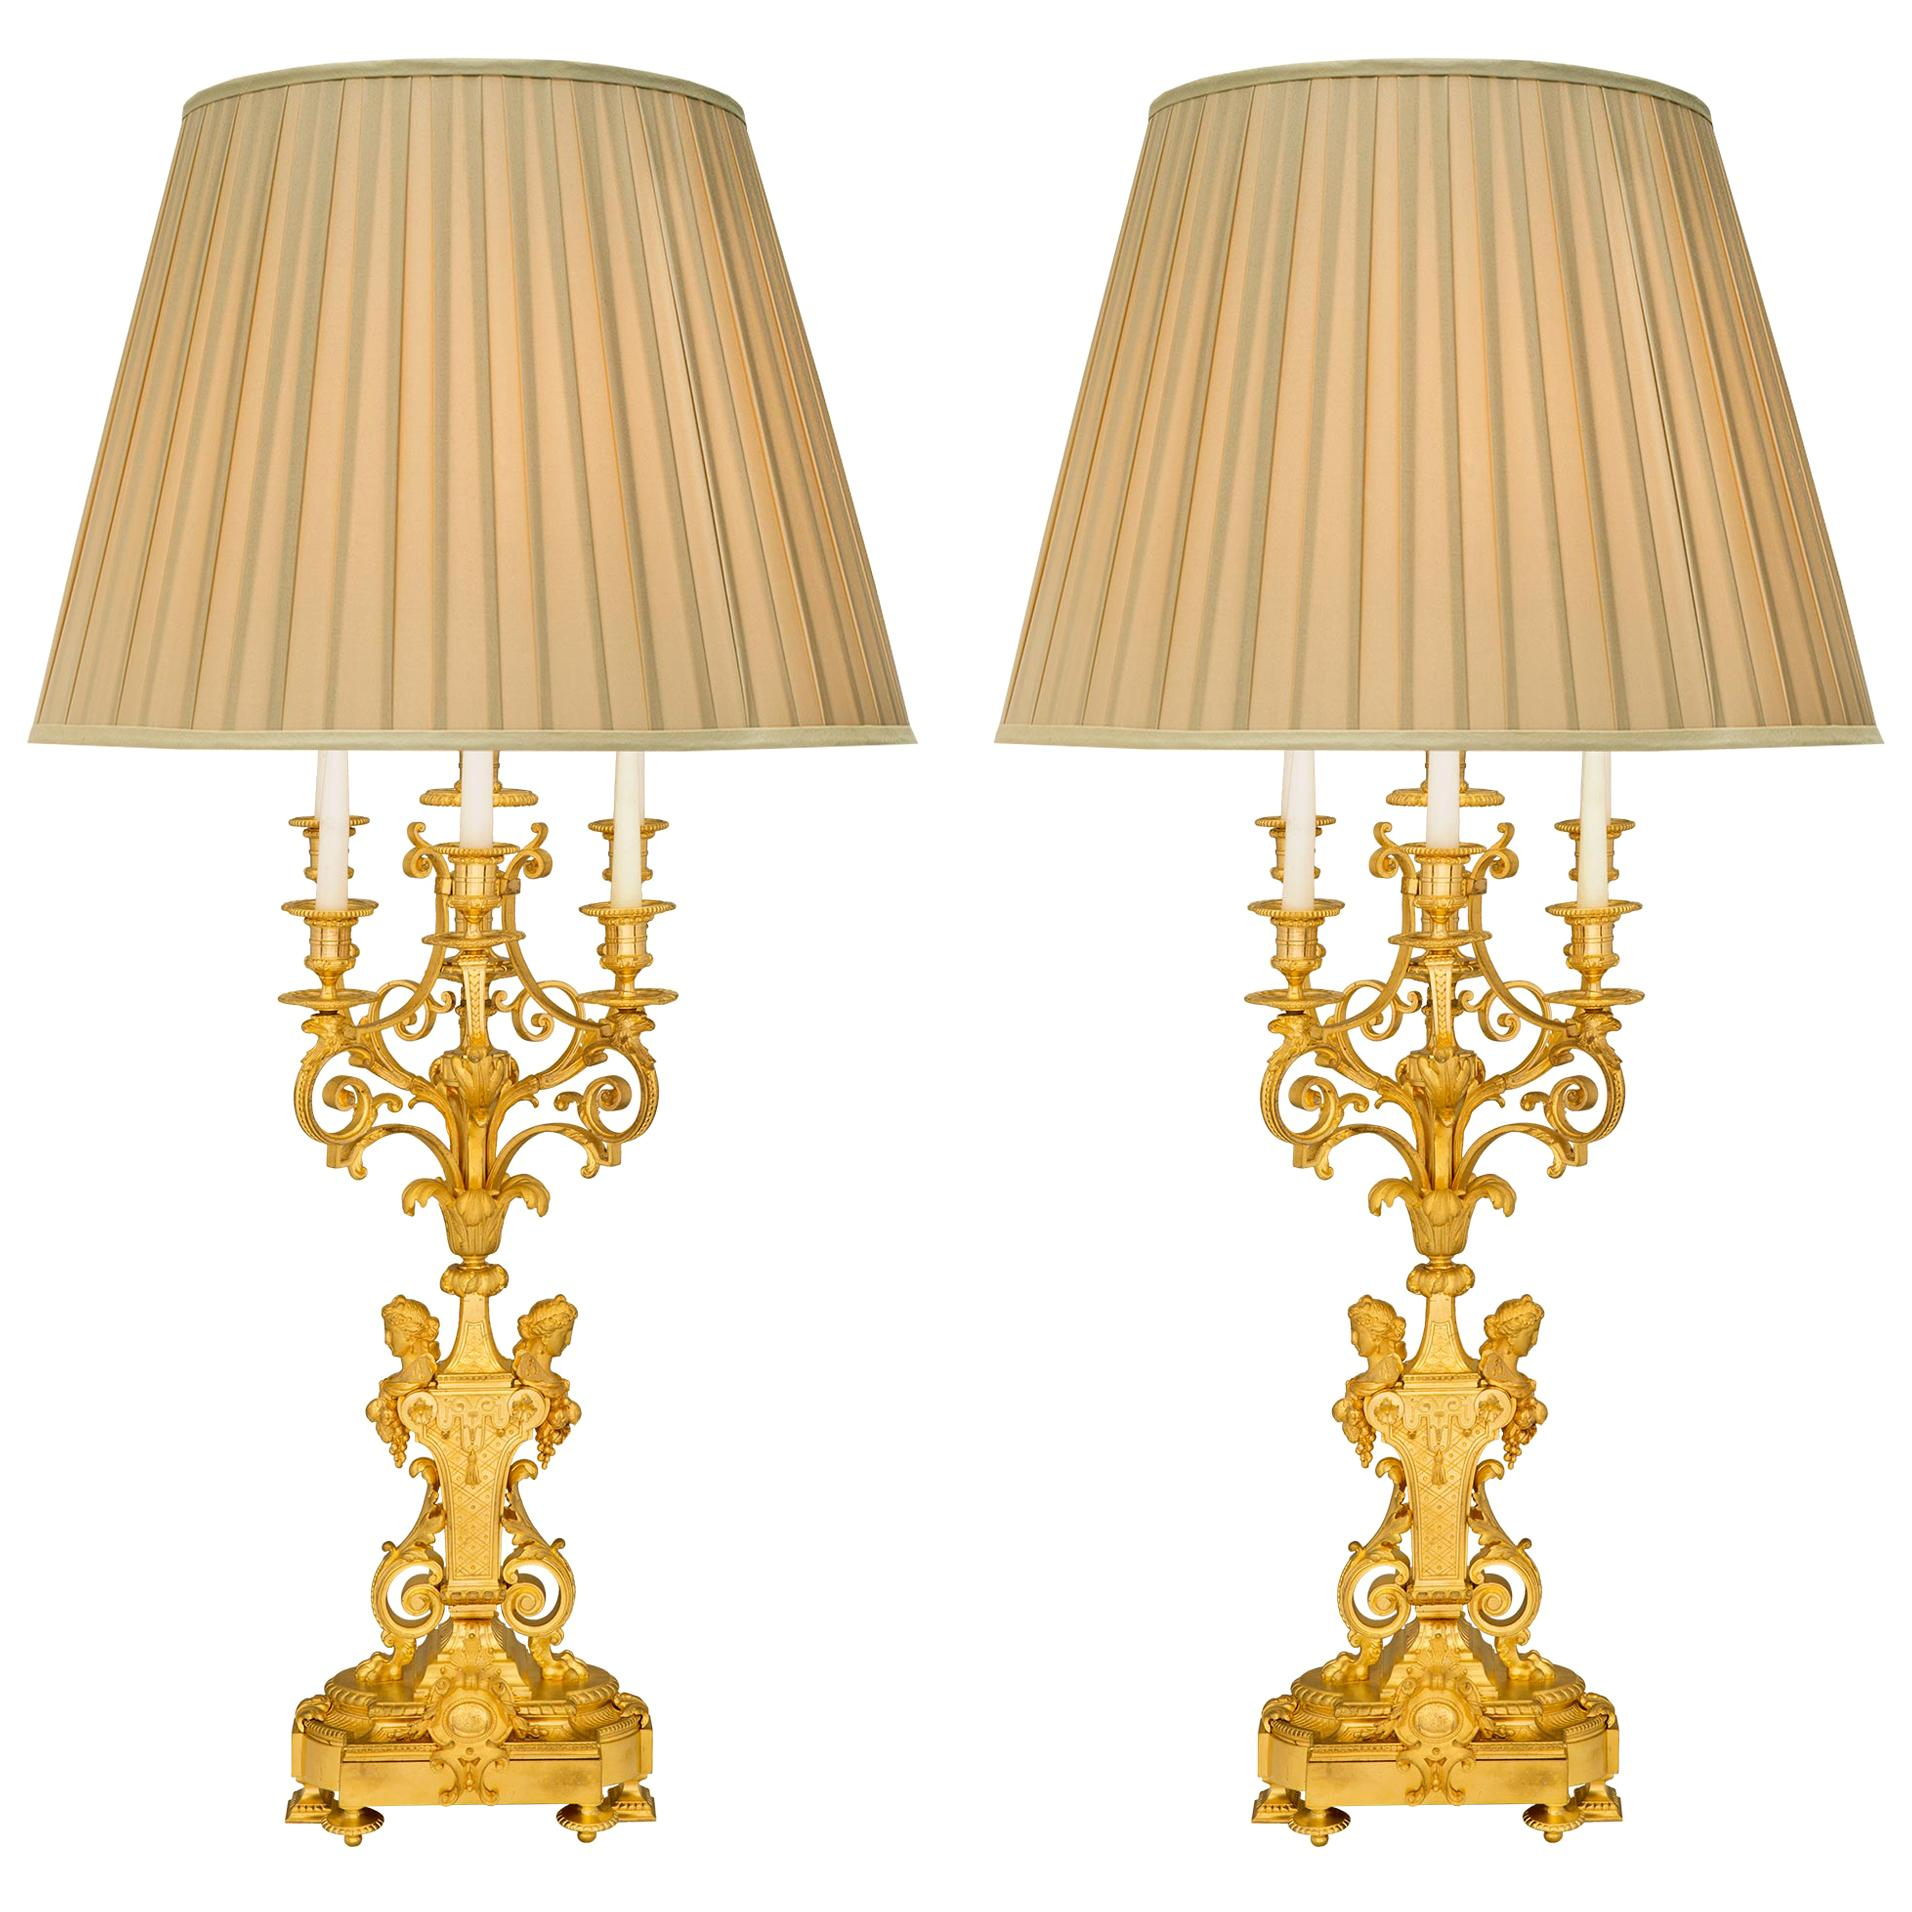 Pair of French 19th Century Louis XVI Style Belle Époque Period Ormolu Lamps